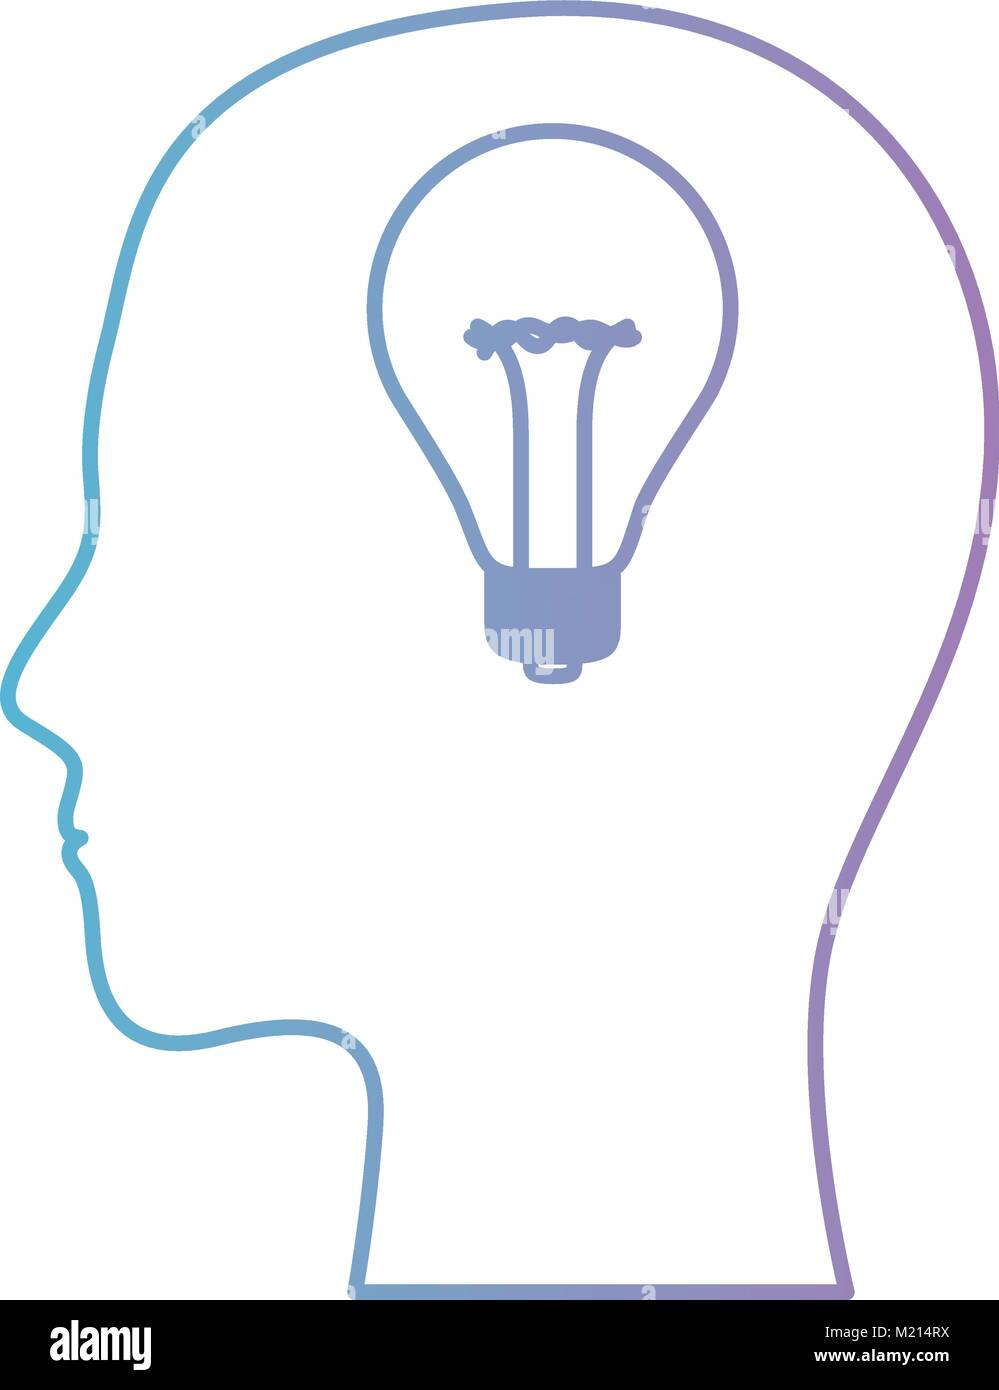 medium resolution of human face silhouette with light bulb inside in degraded blue to purple color contour